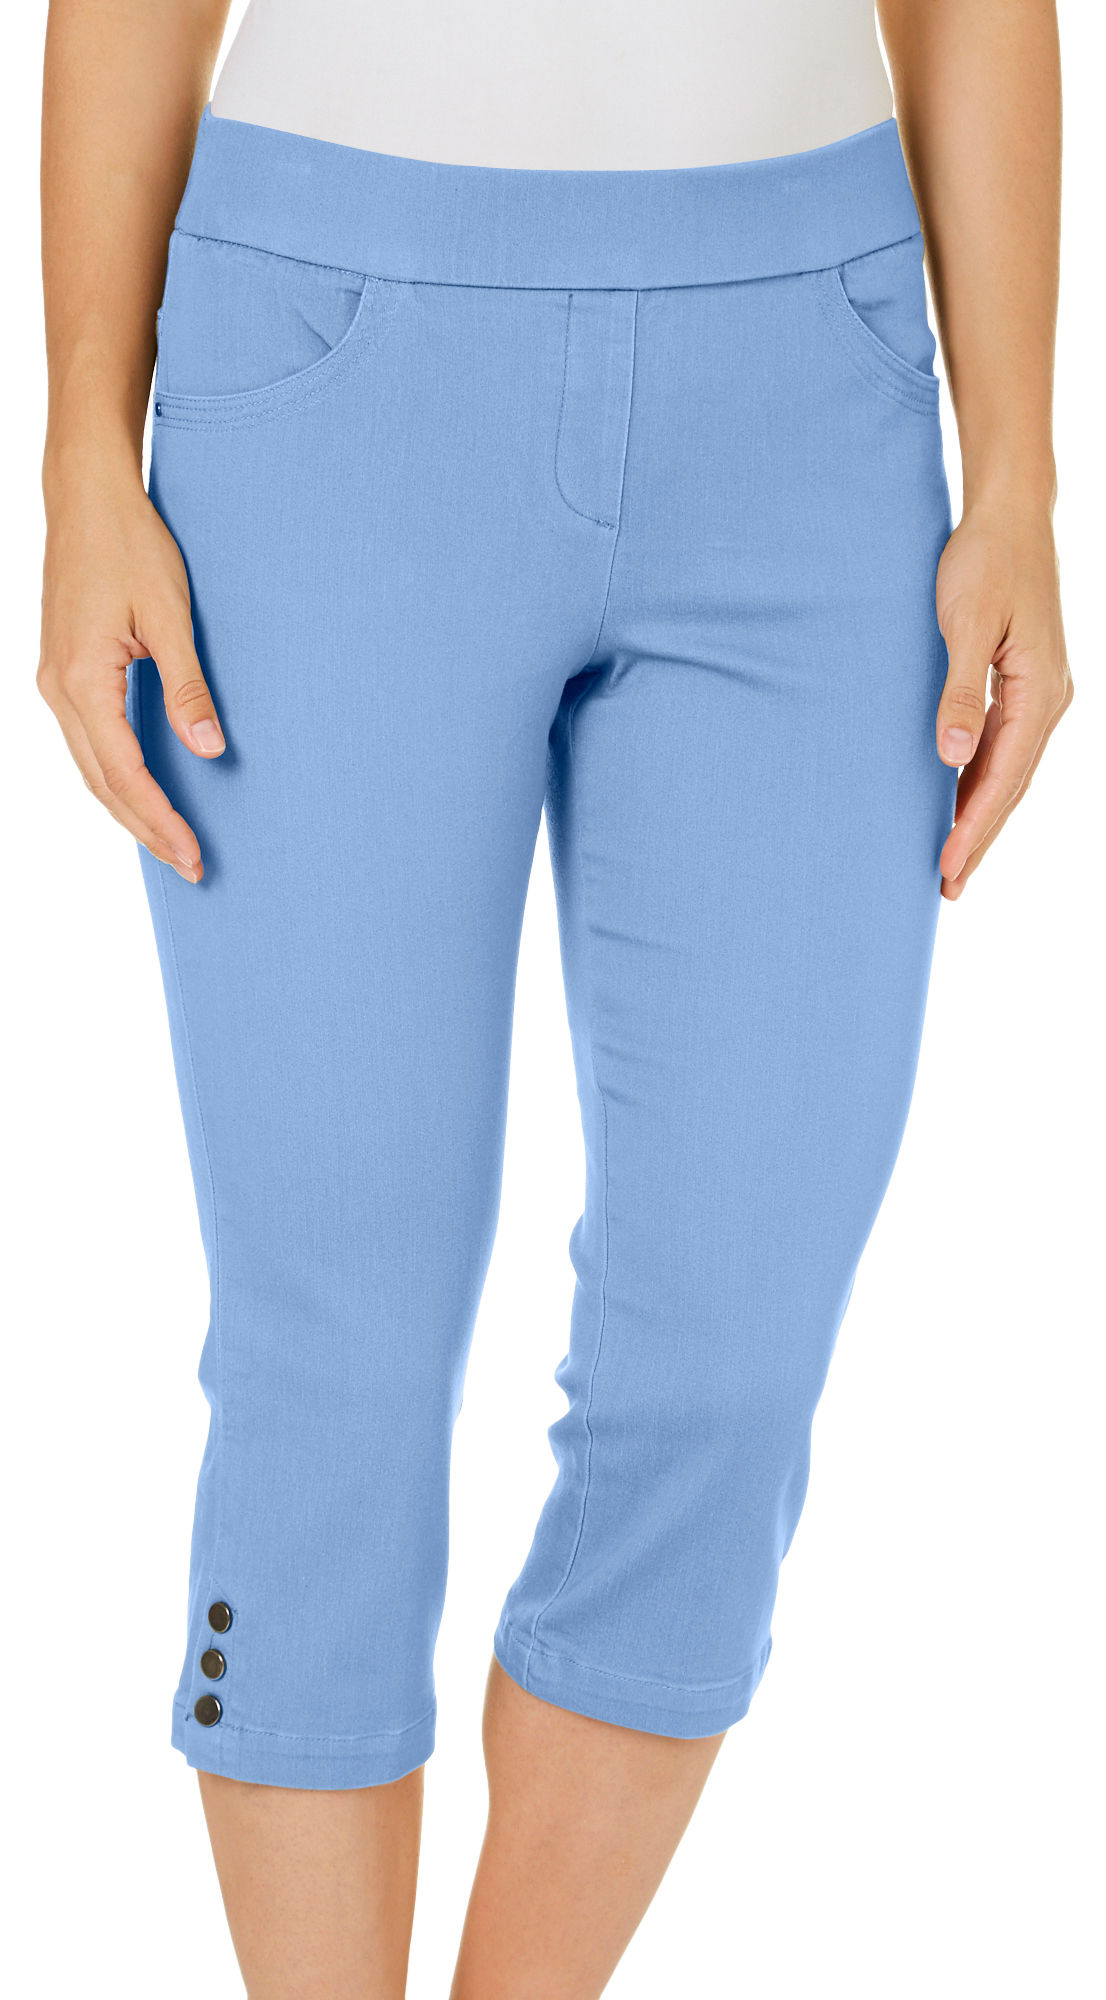 Coral Bay Womens Pull-On Stretch Capris | eBay